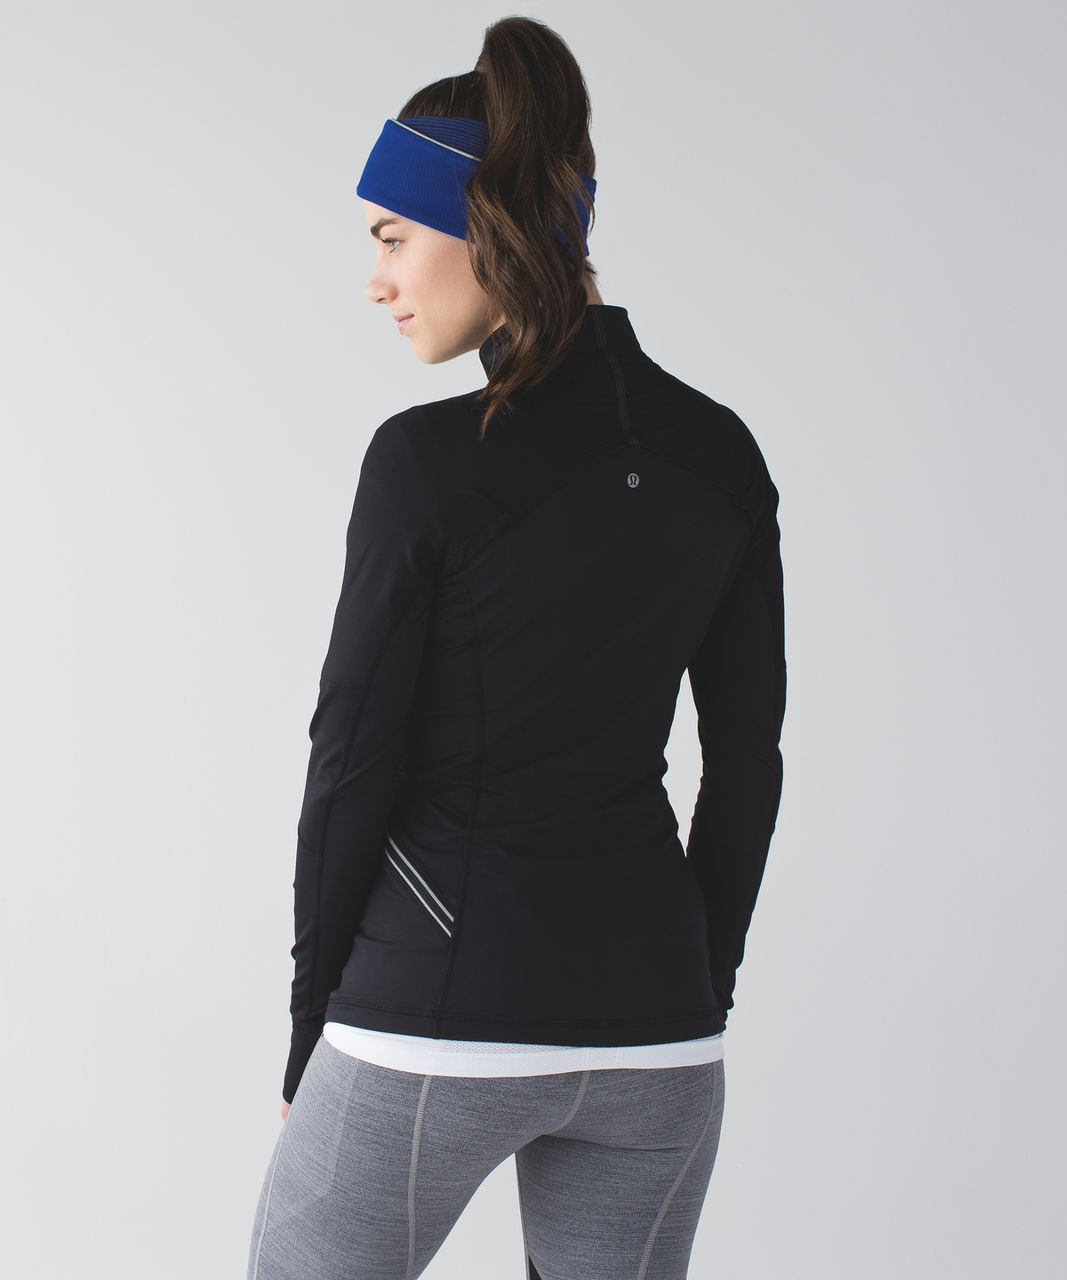 Lululemon Run And Done Ear Warmer - Kanto Stripe Sapphire Blue Black